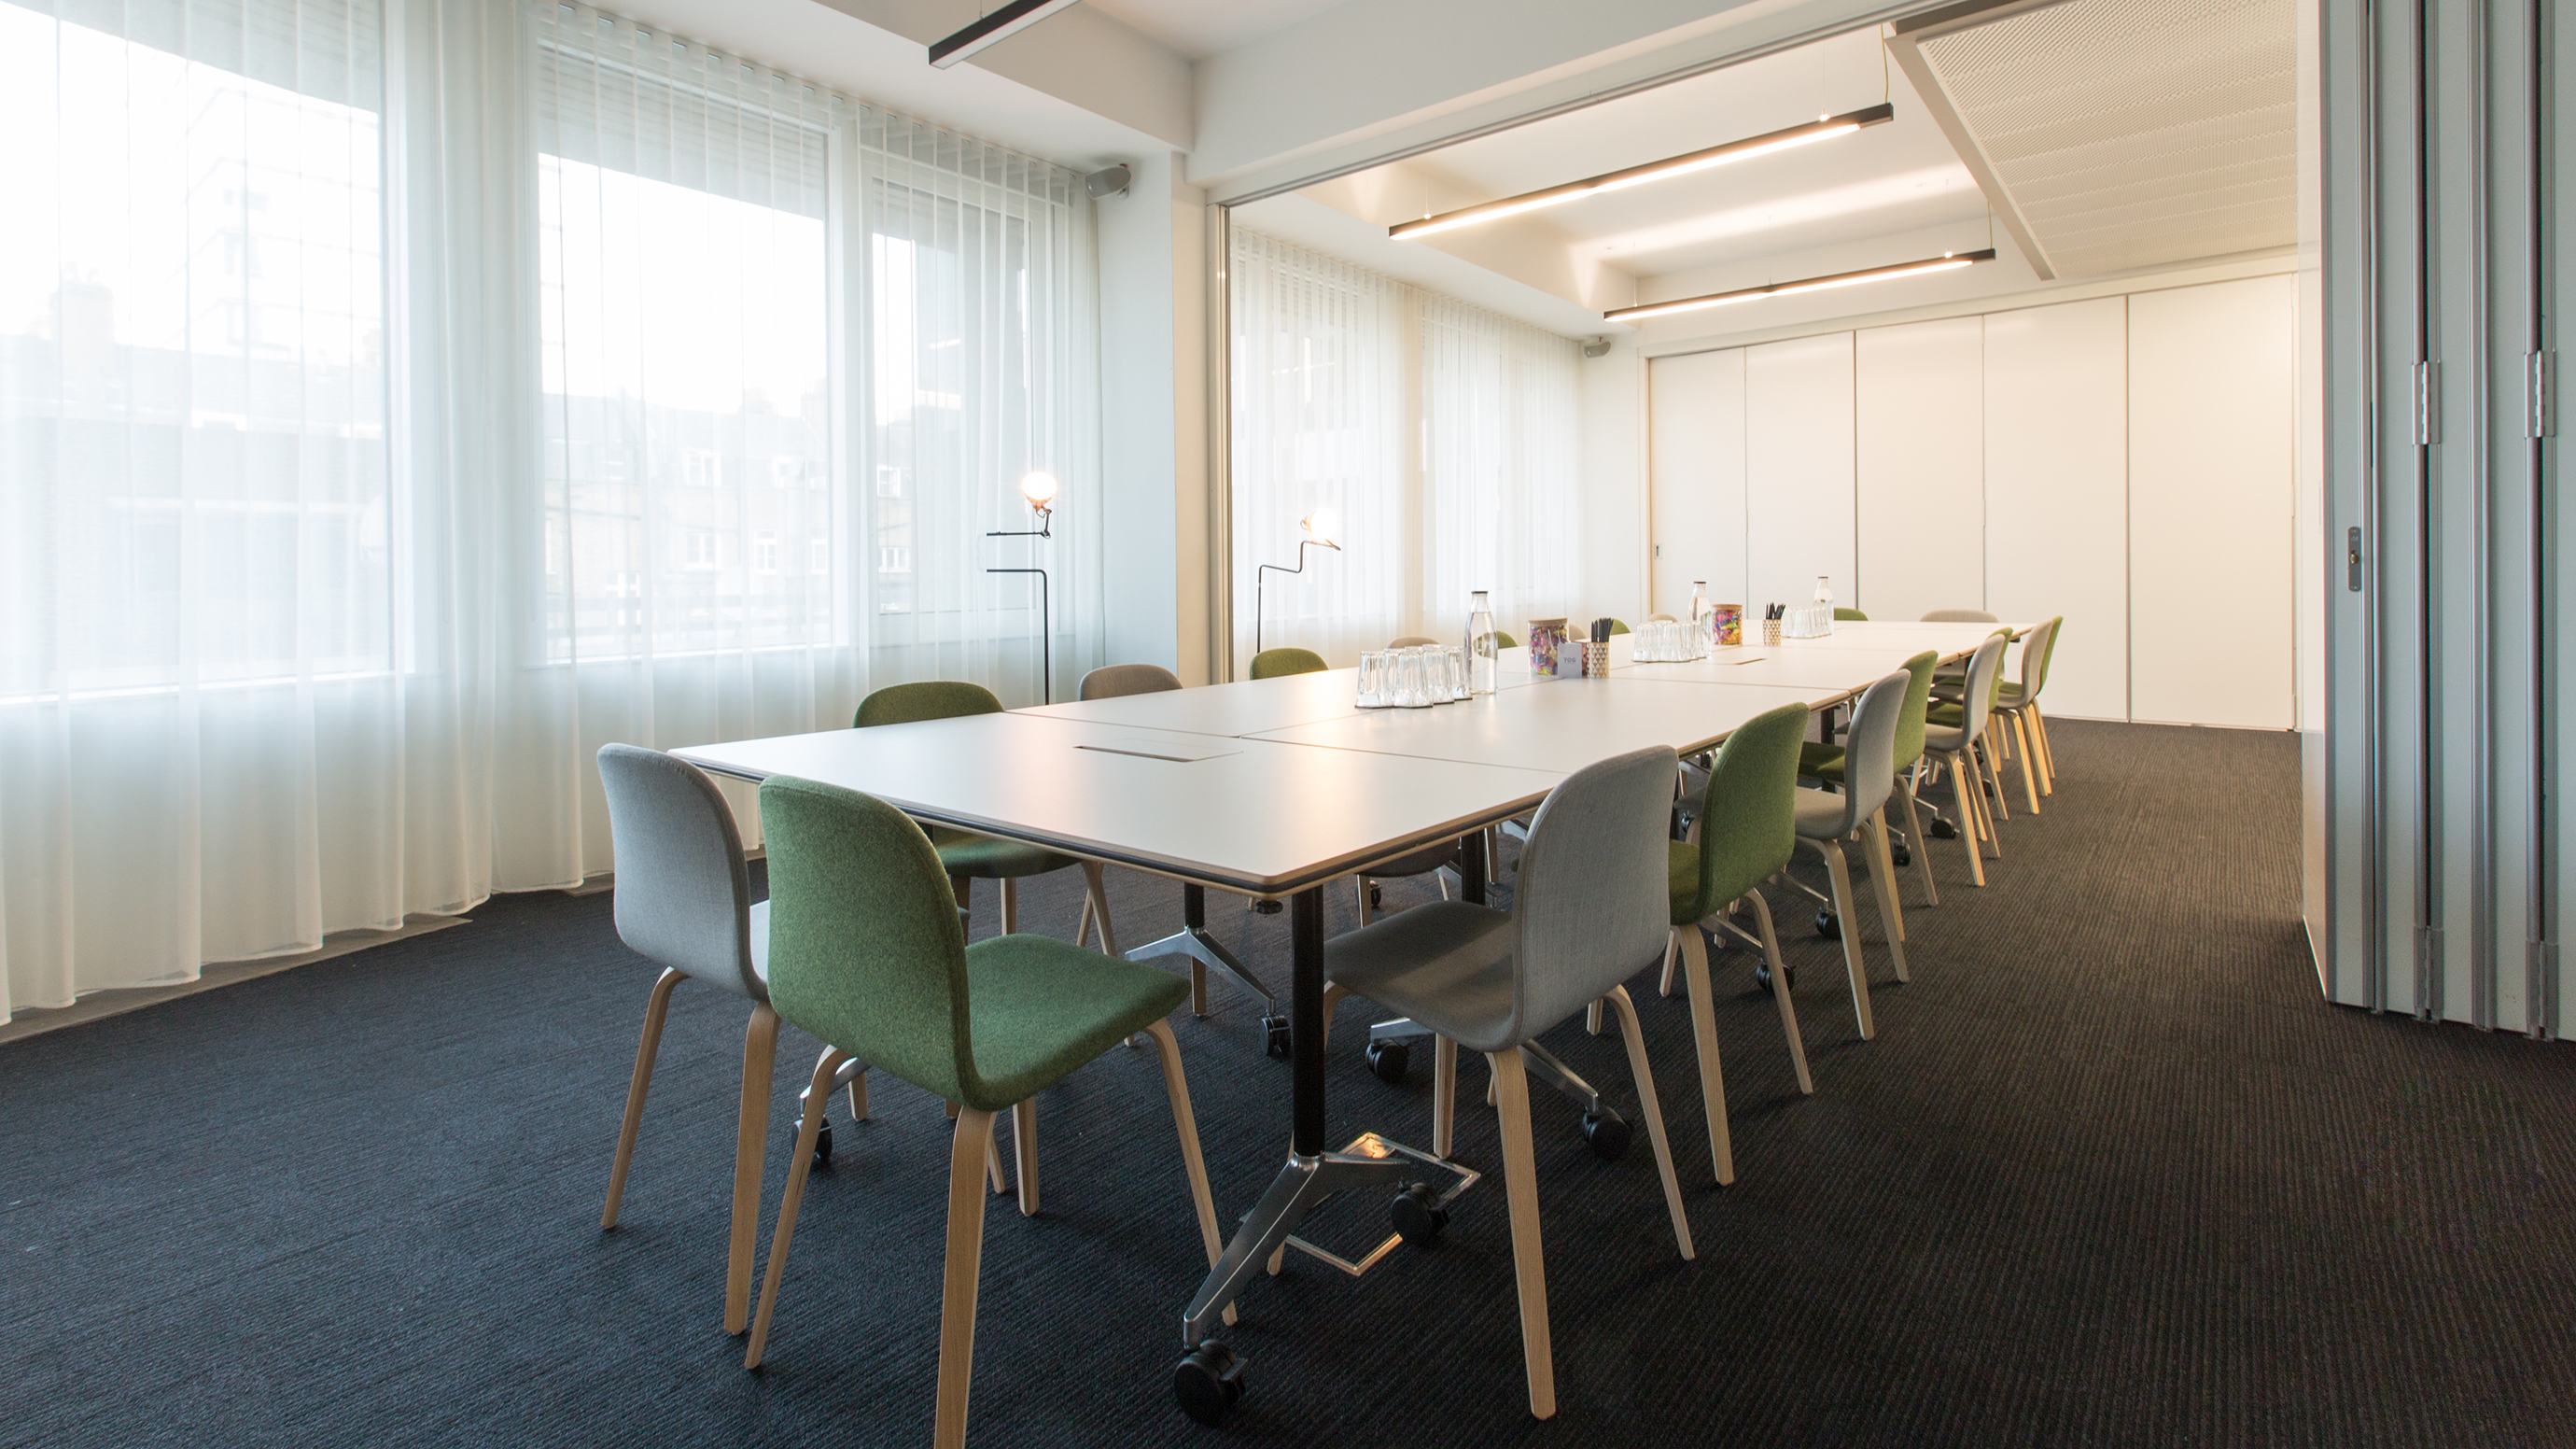 Medium meeting room with white table and grey and green chairs at TOG building 2 Stephen Street London